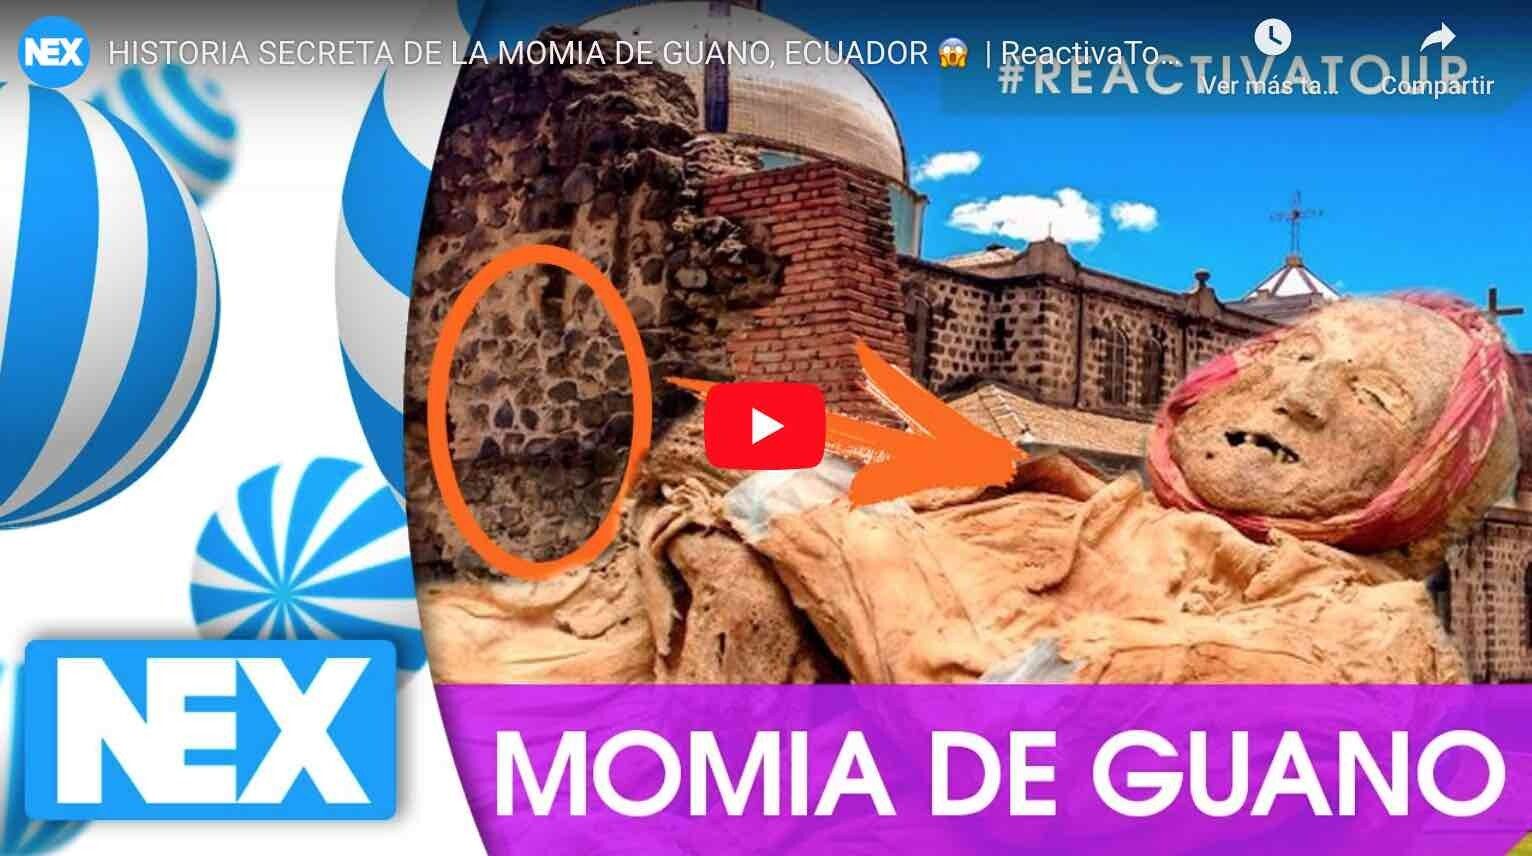 VIDEO: HISTORIA SECRETA DE LA MOMIA DE GUANO